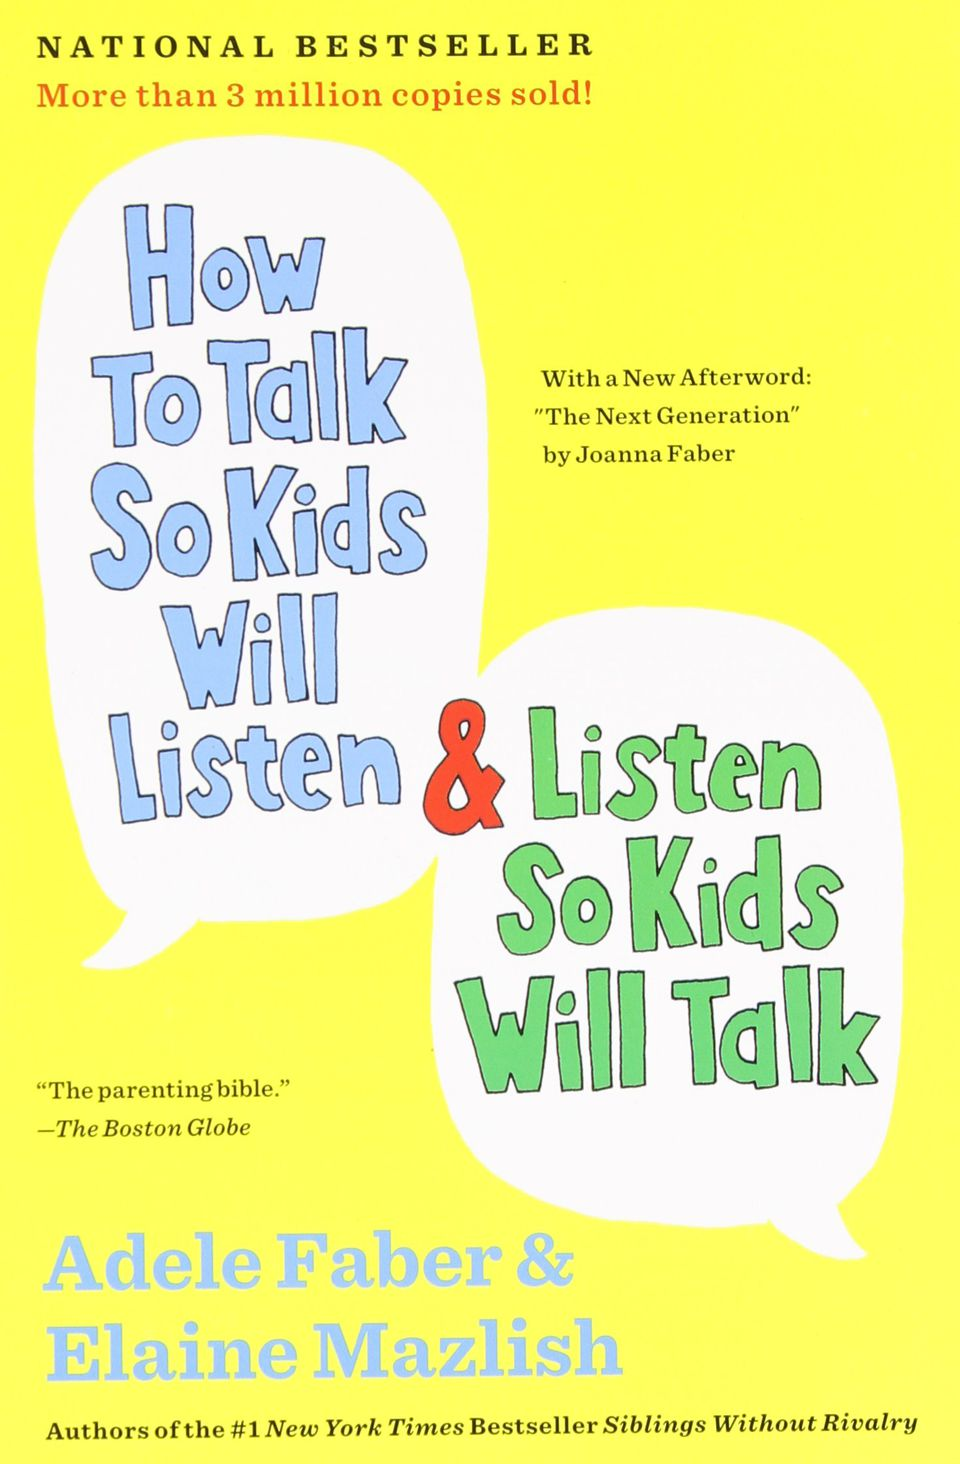 How to Talk to Kids Will Listen